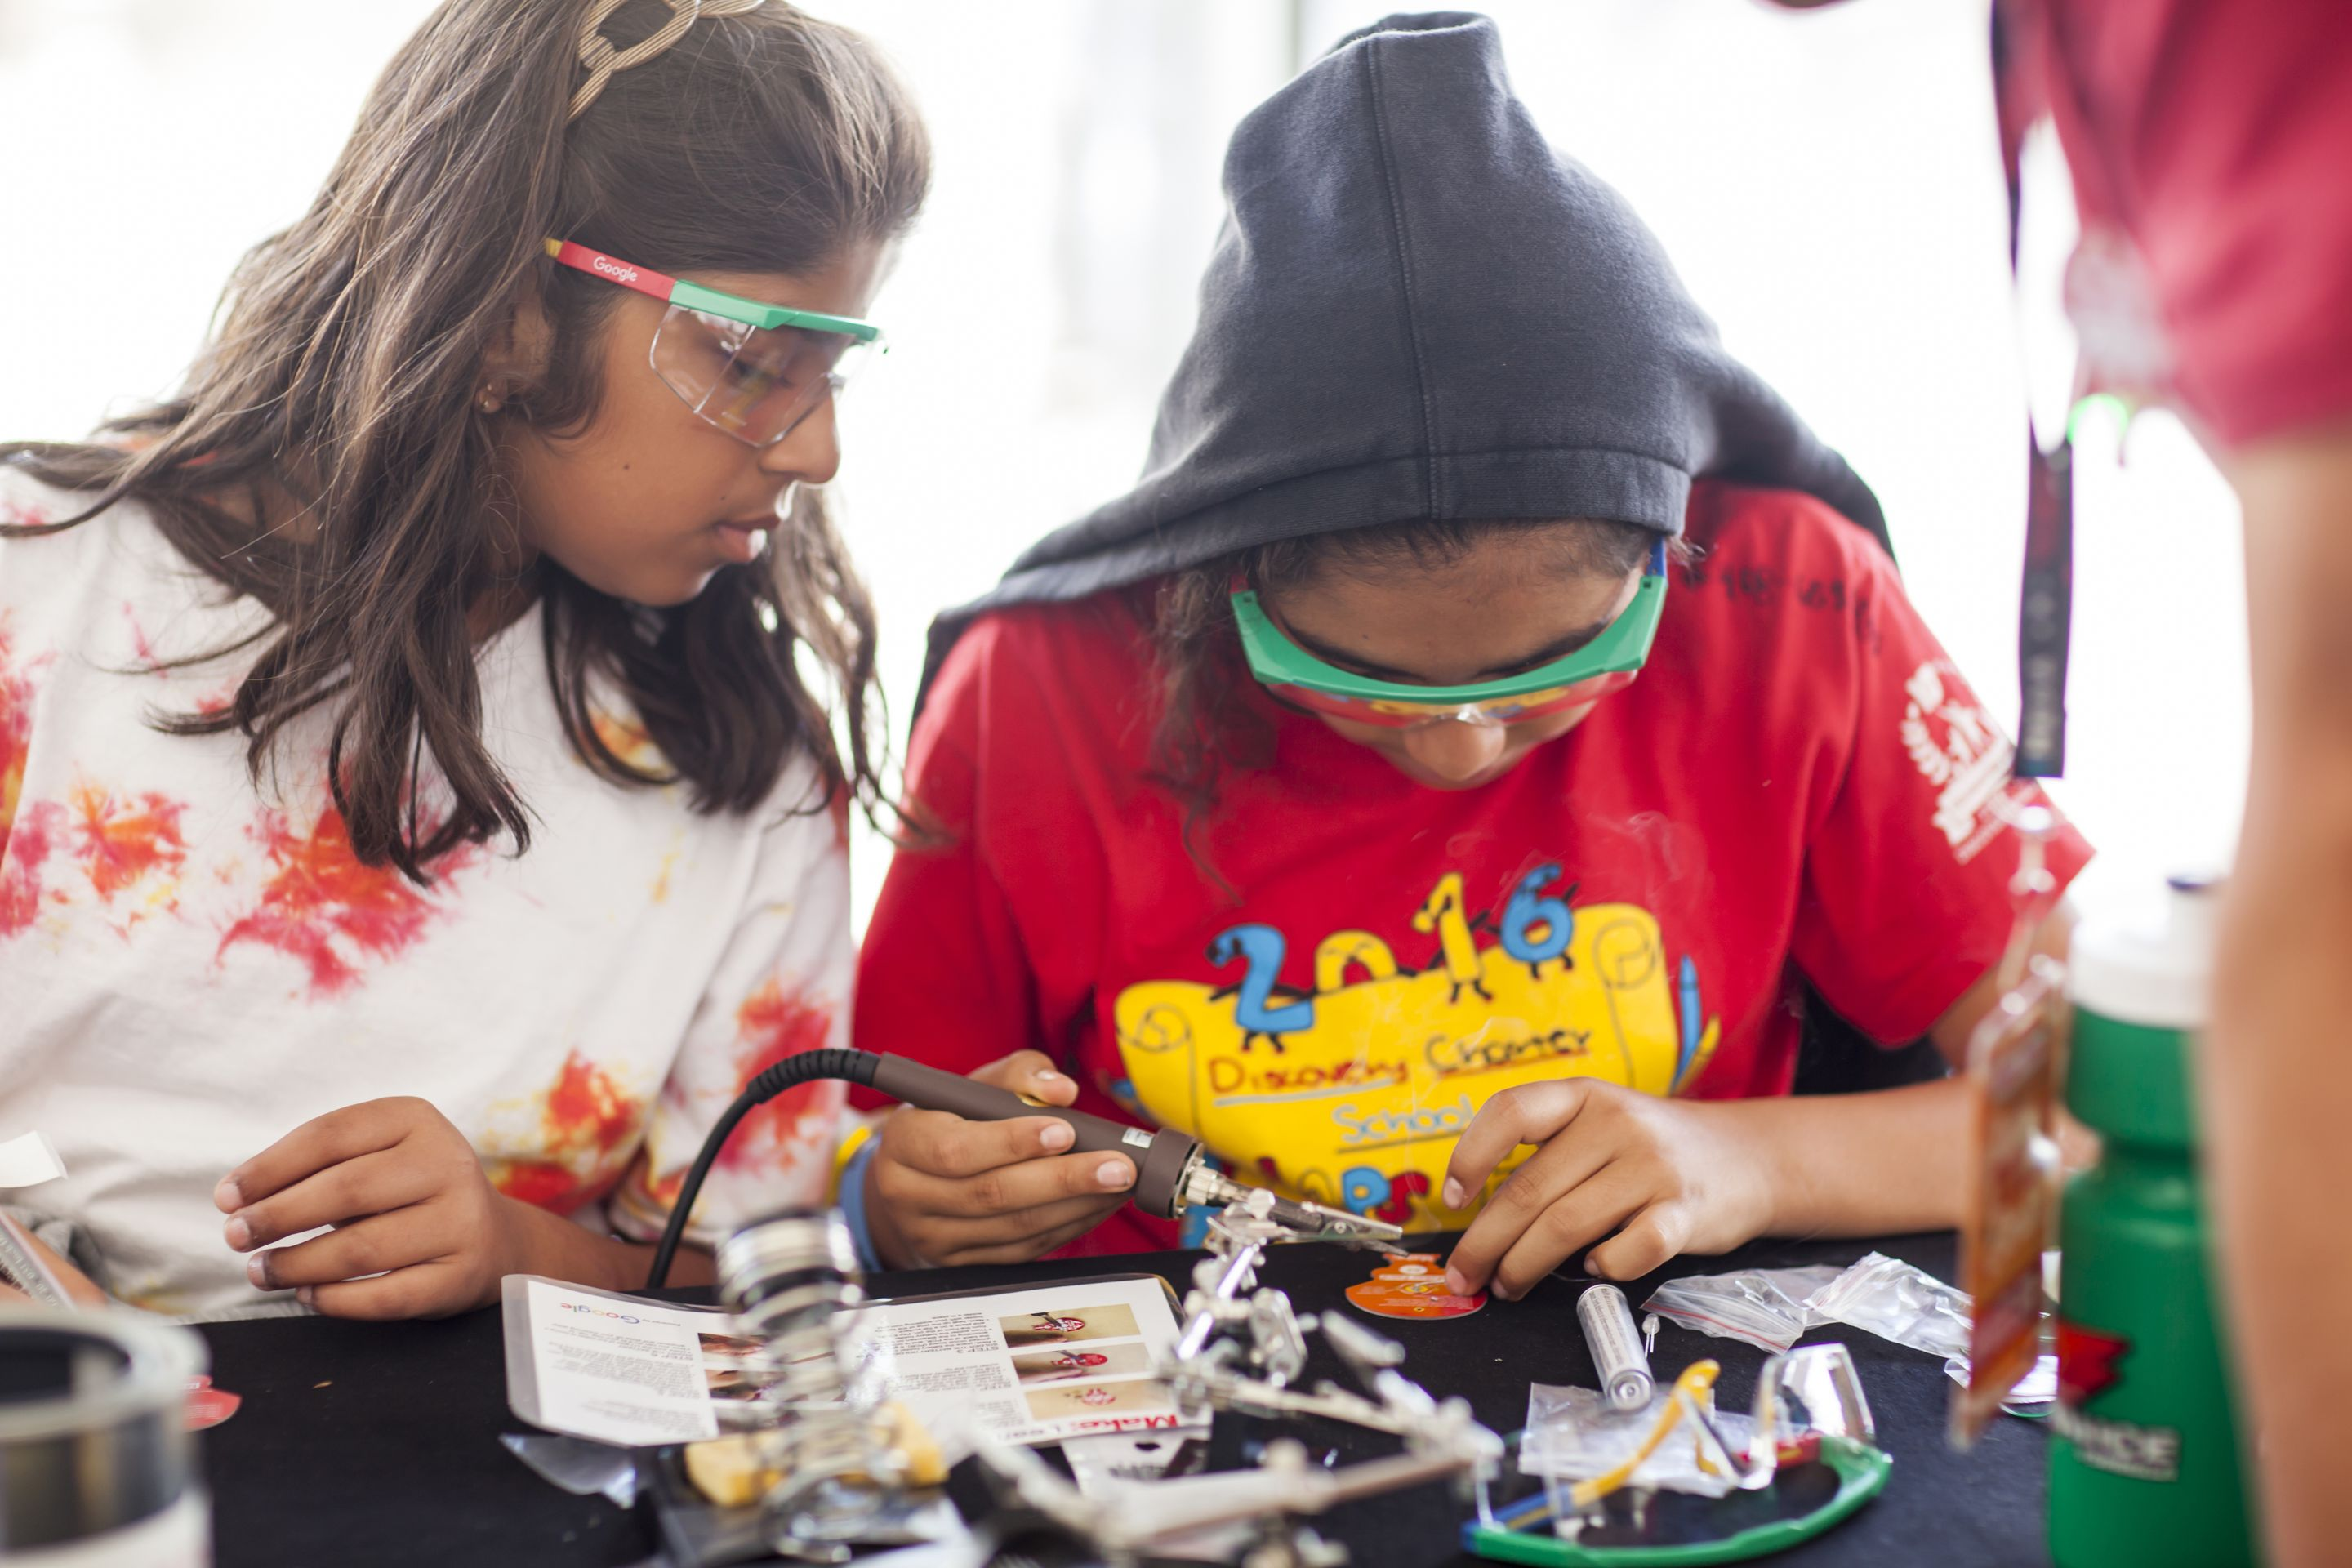 Two middle school students working on a robotics project